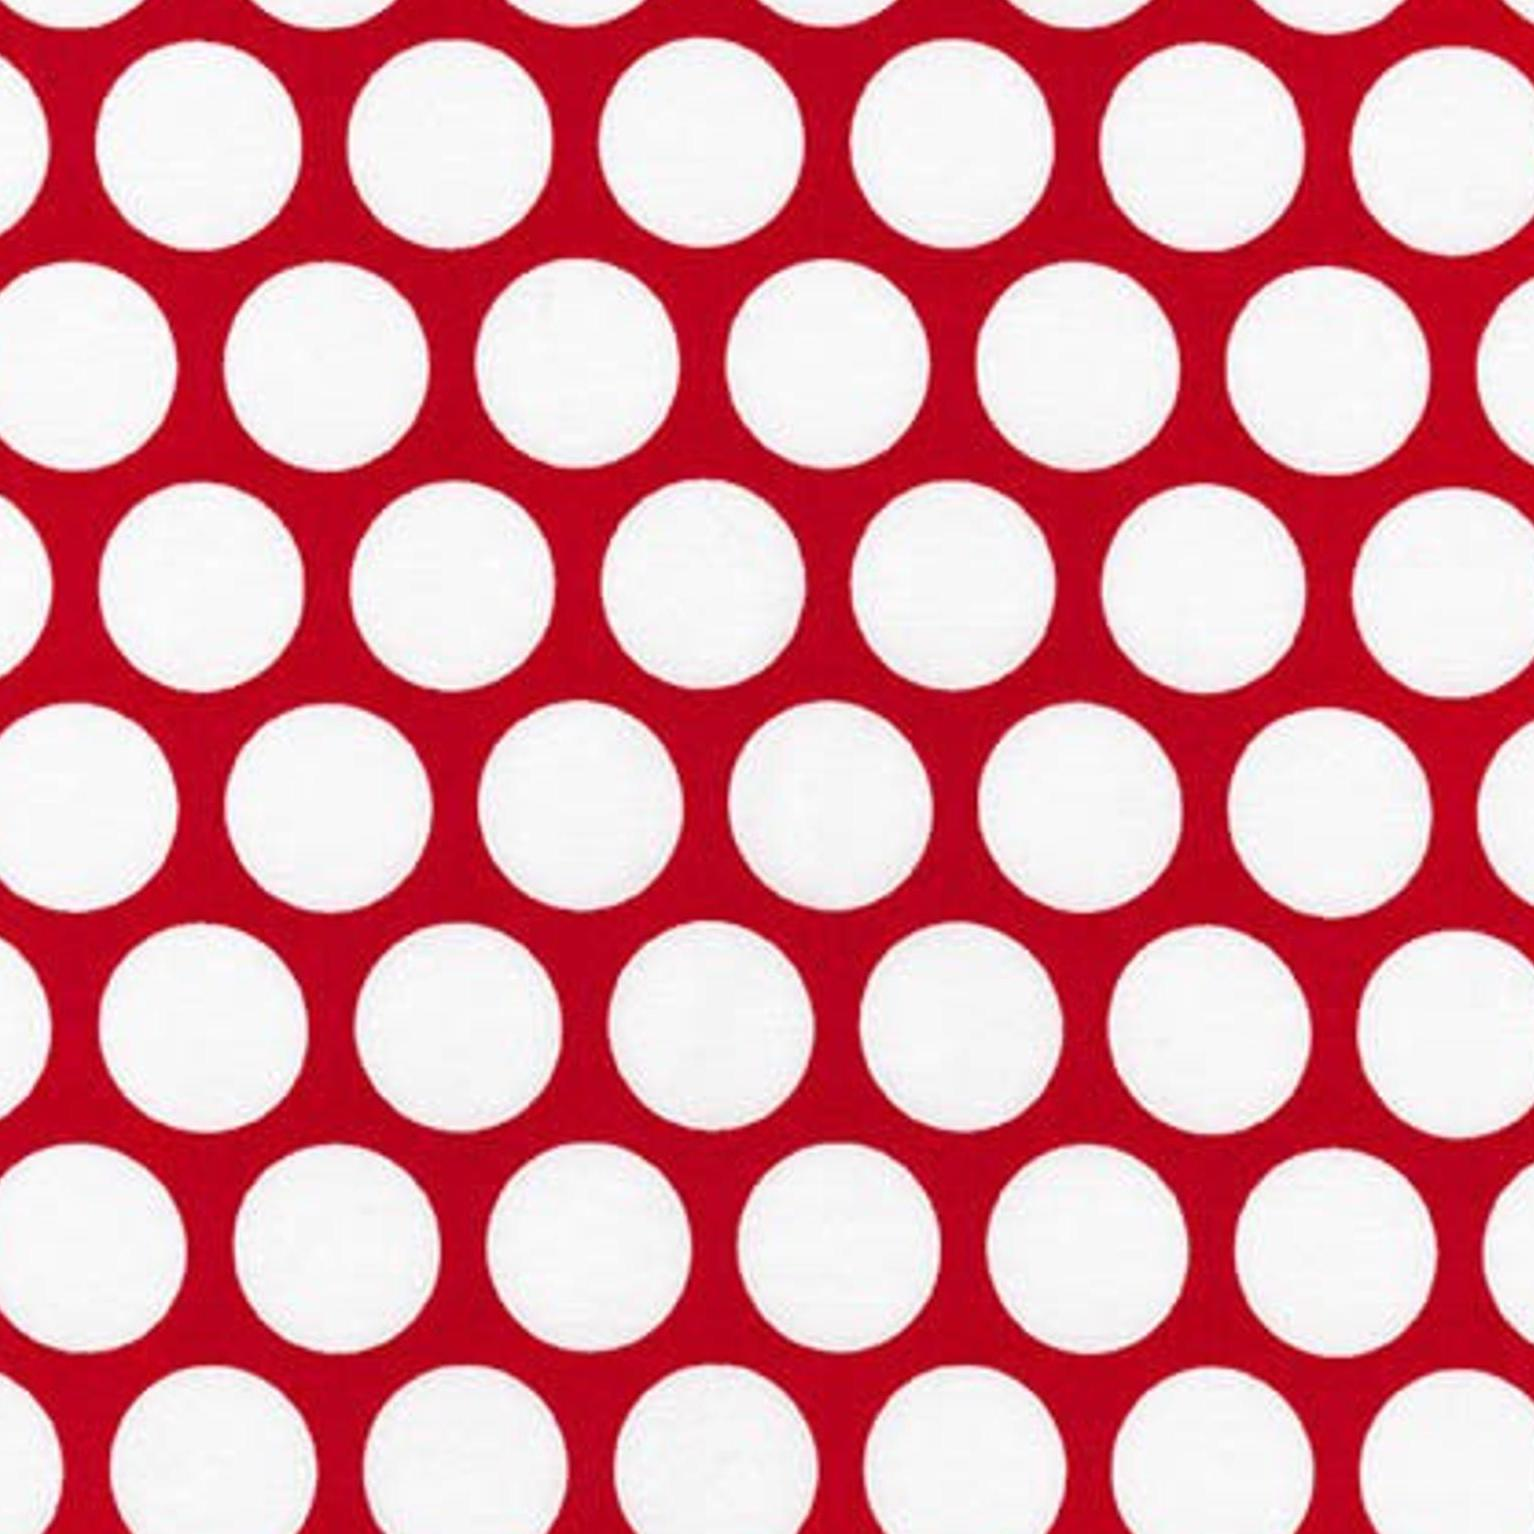 Spot On Red Dot Fabric